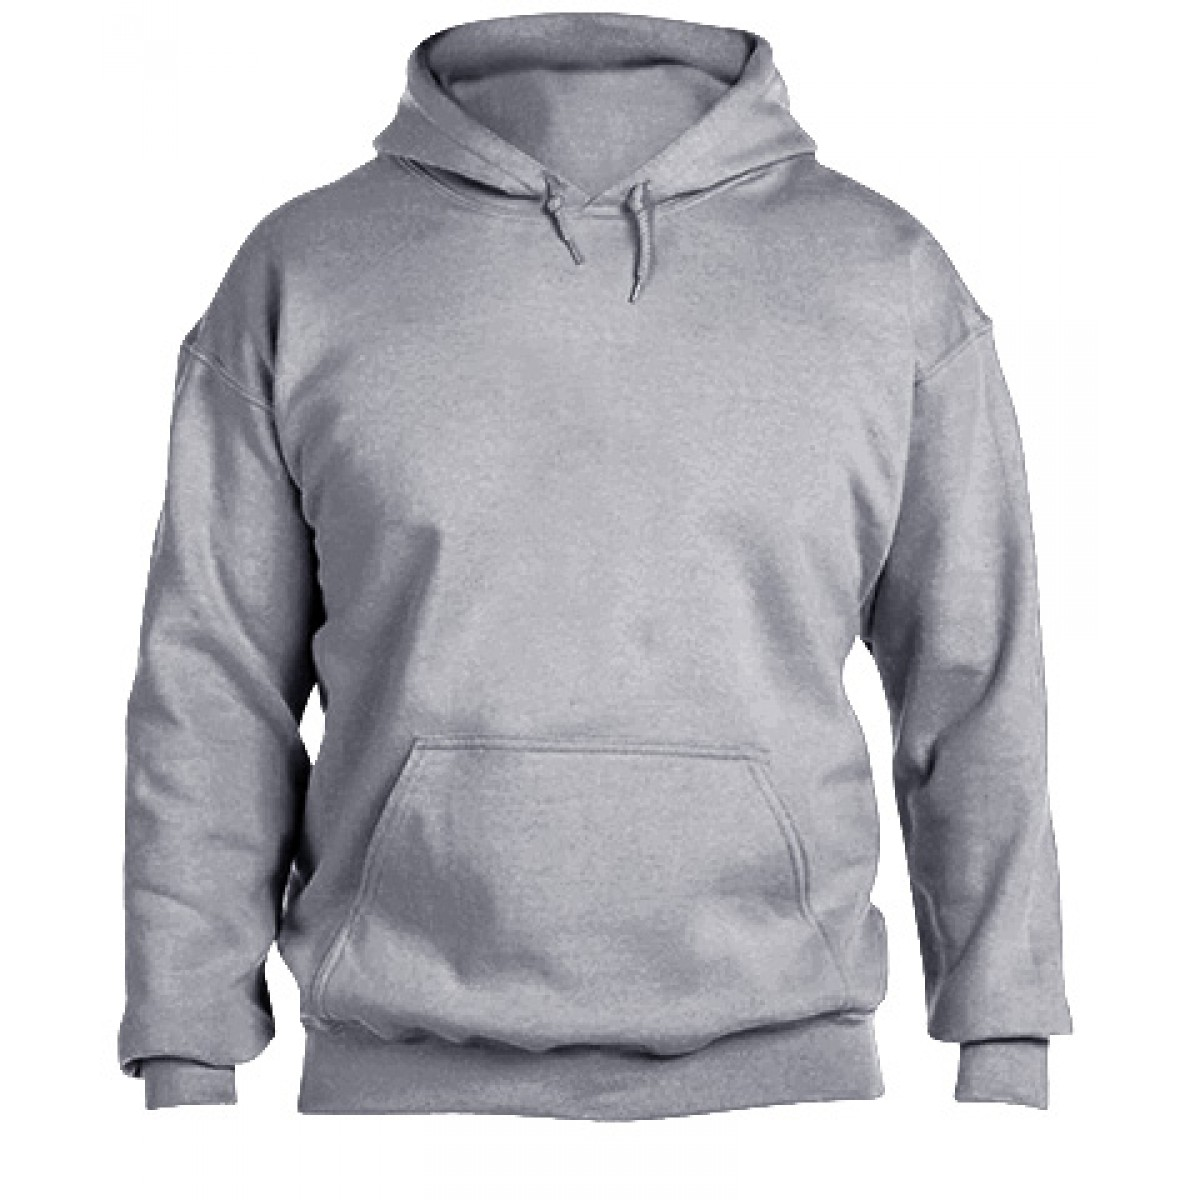 Hooded Sweatshirt 50/50 Heavy Blend-Sports Grey-M